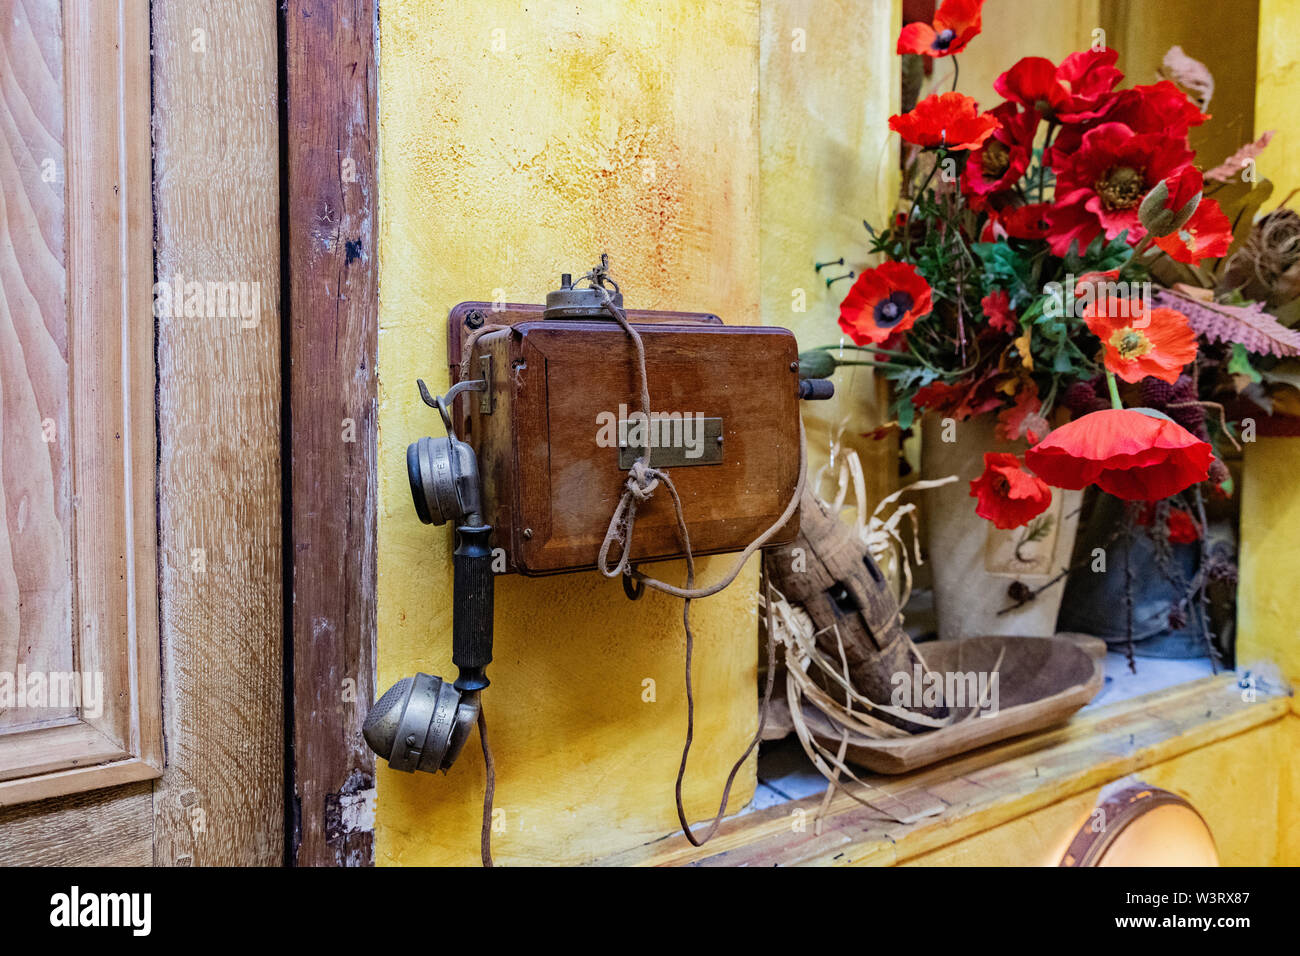 Paris, France vintage telephone and flowers - Stock Image